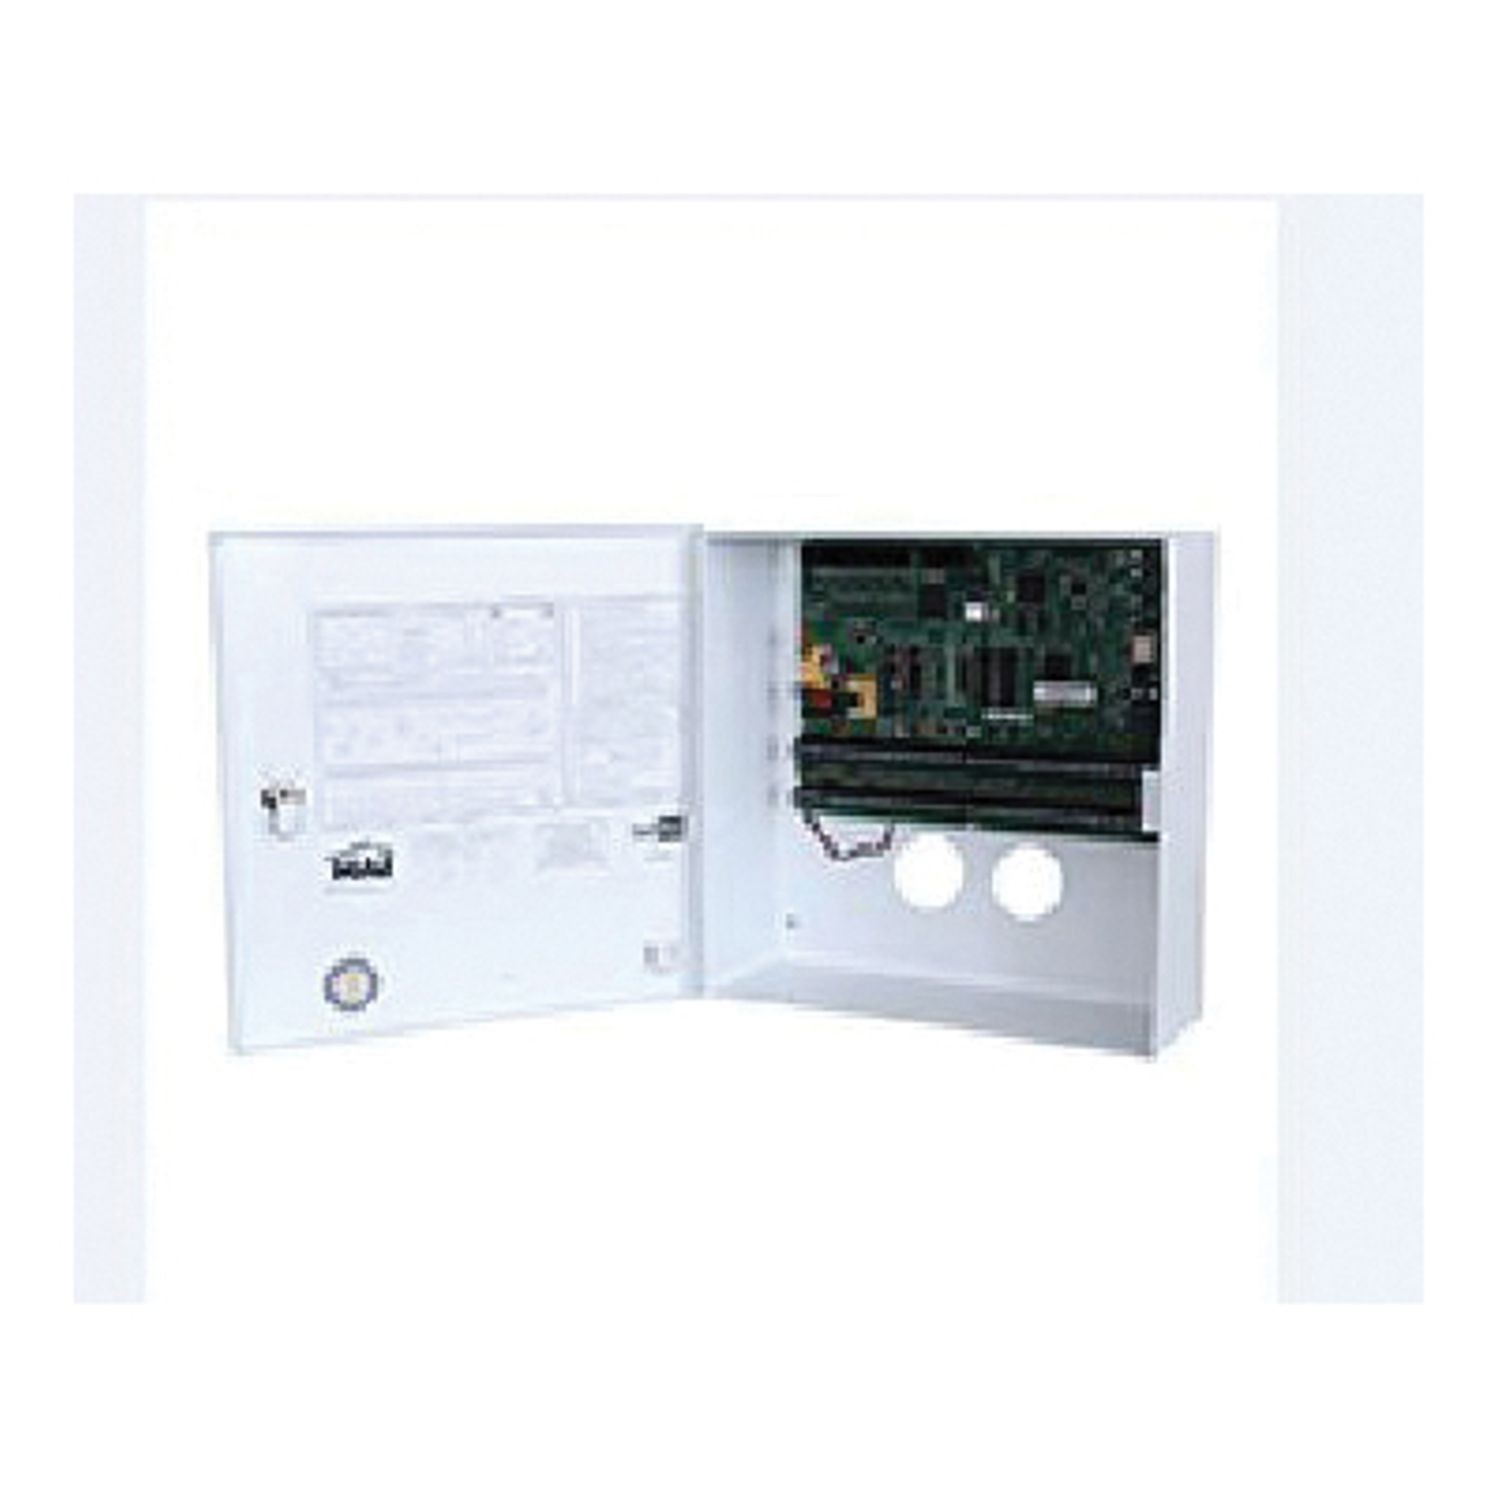 Leviton® Omni Pro II™ 20A00-2 Security and Automation Controller ...